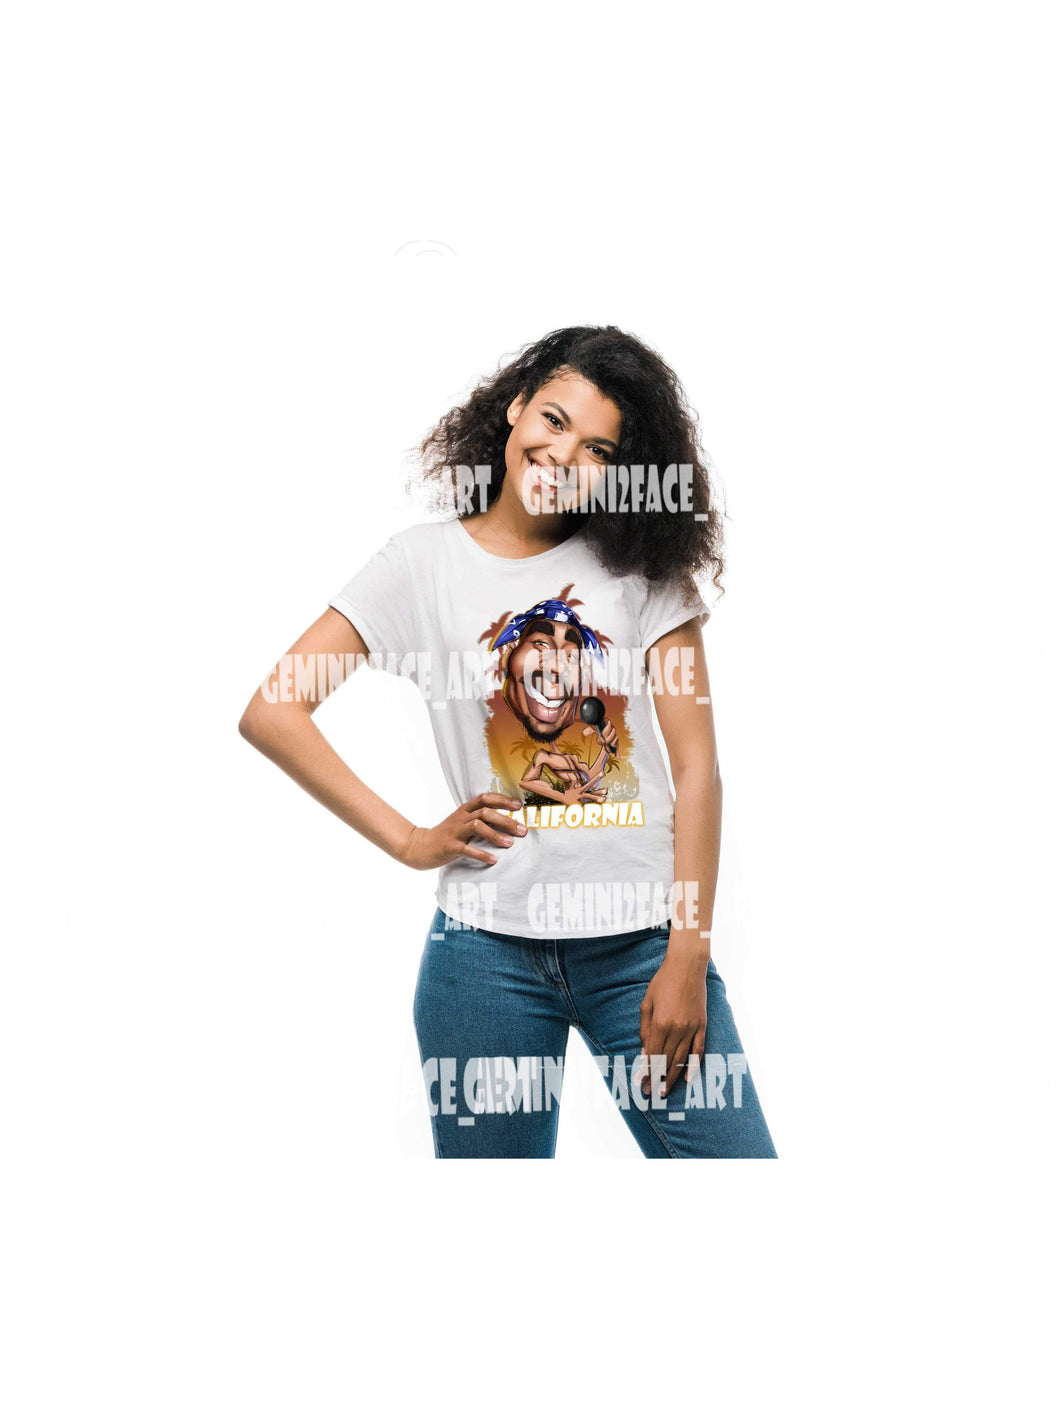 California Love Shirt Gemini2face Art E-Store